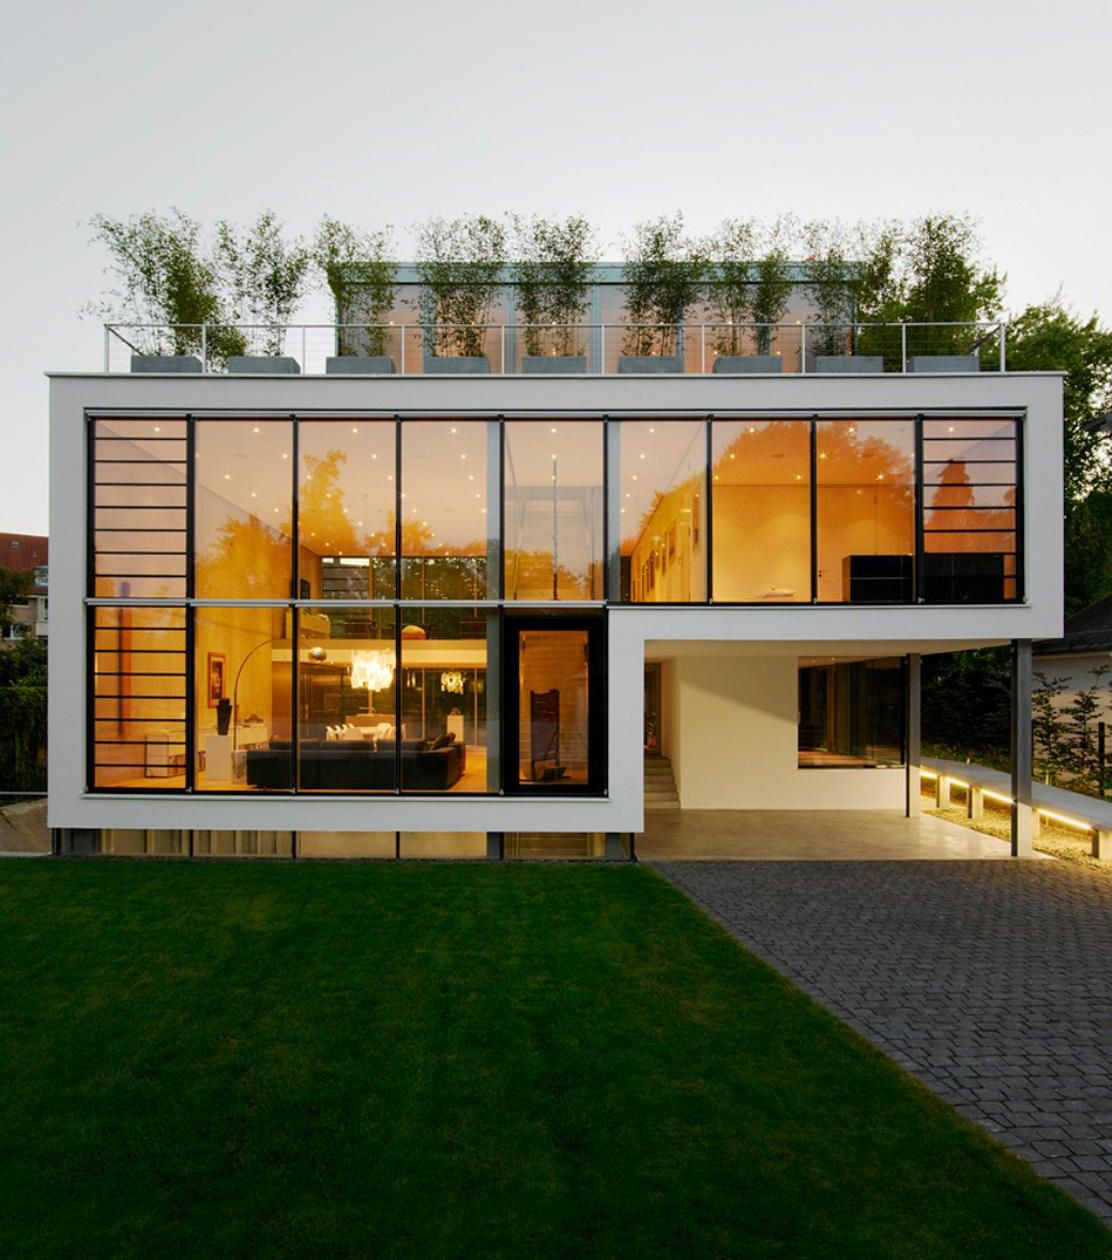 1000+ images about iny House on Pinterest - ^